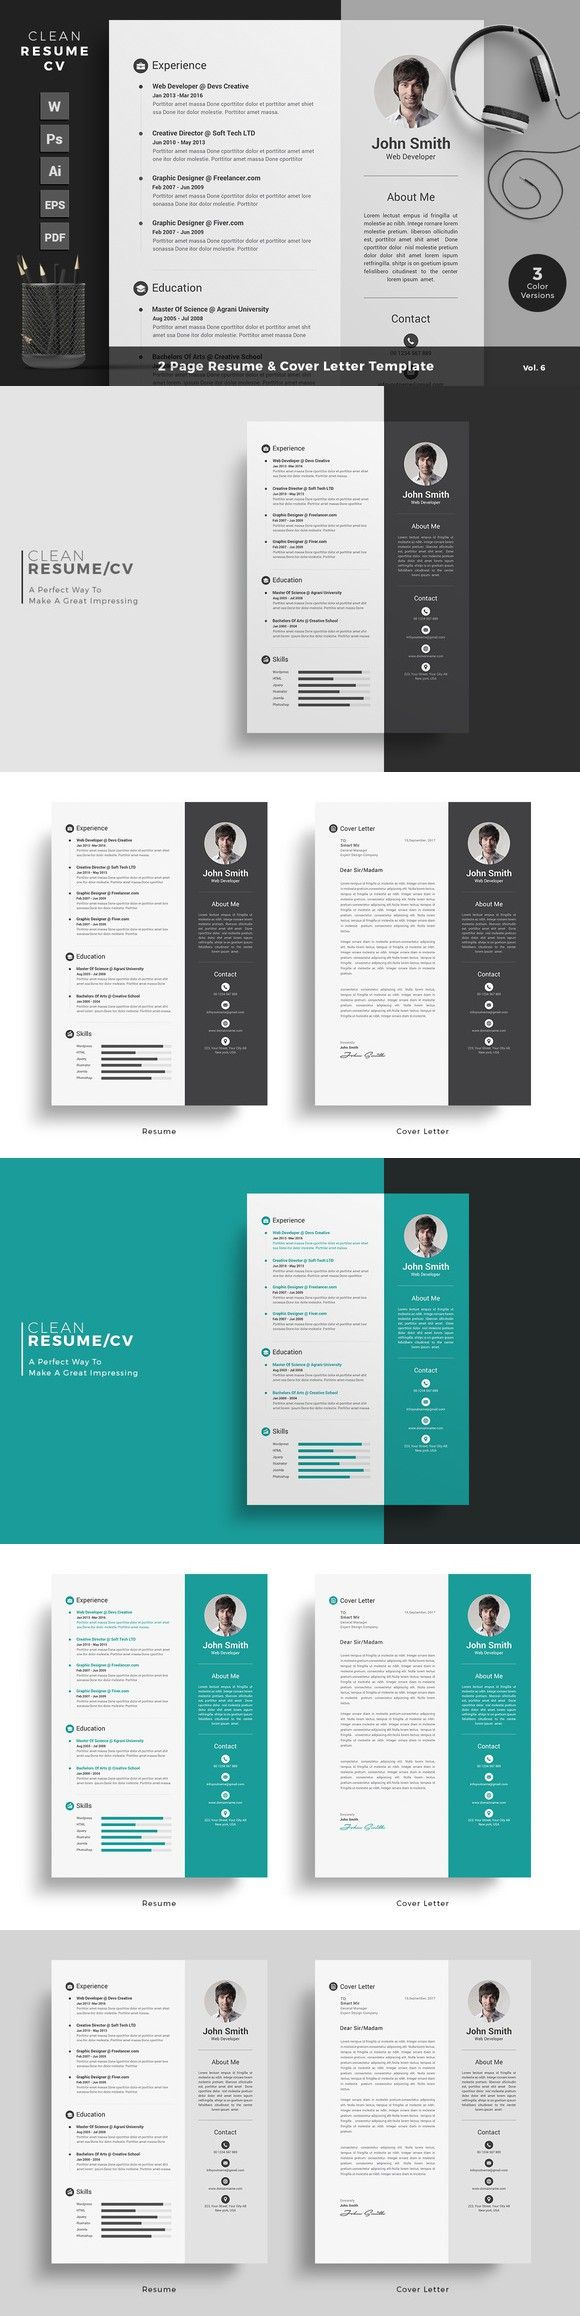 25 best cv images on Pinterest | Resume design, Design resume and ...